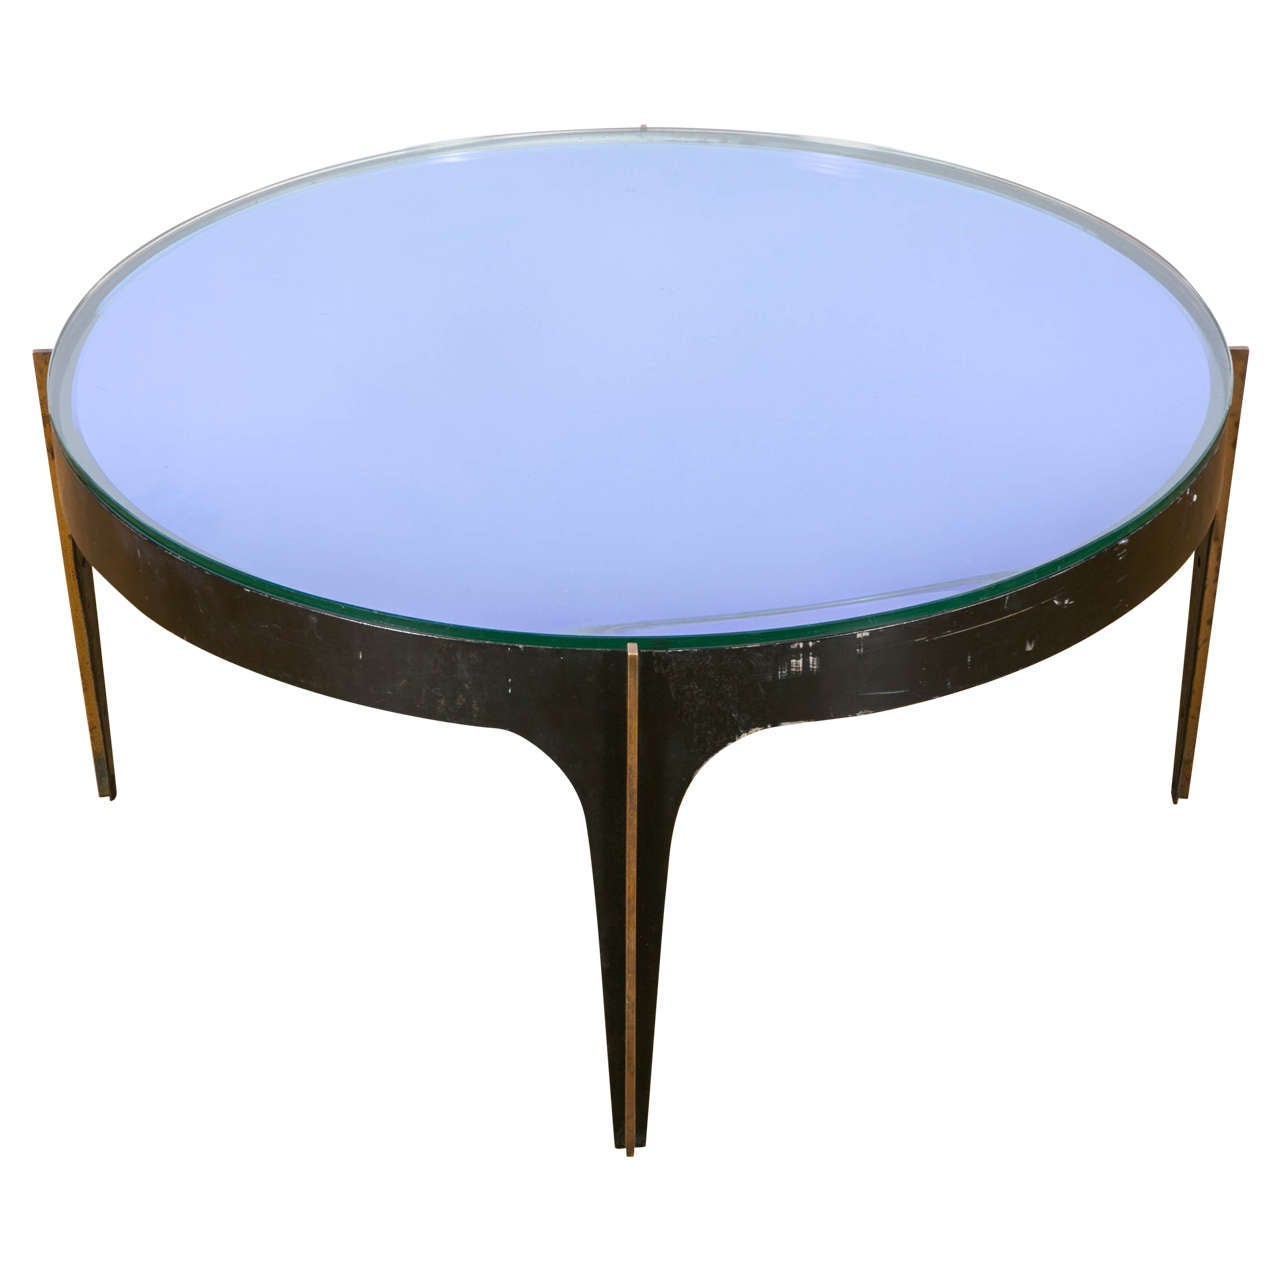 Exceptional Coffee Table With Glass Tops By Fontana Arte Italy 1950 1955 At 1stdibs